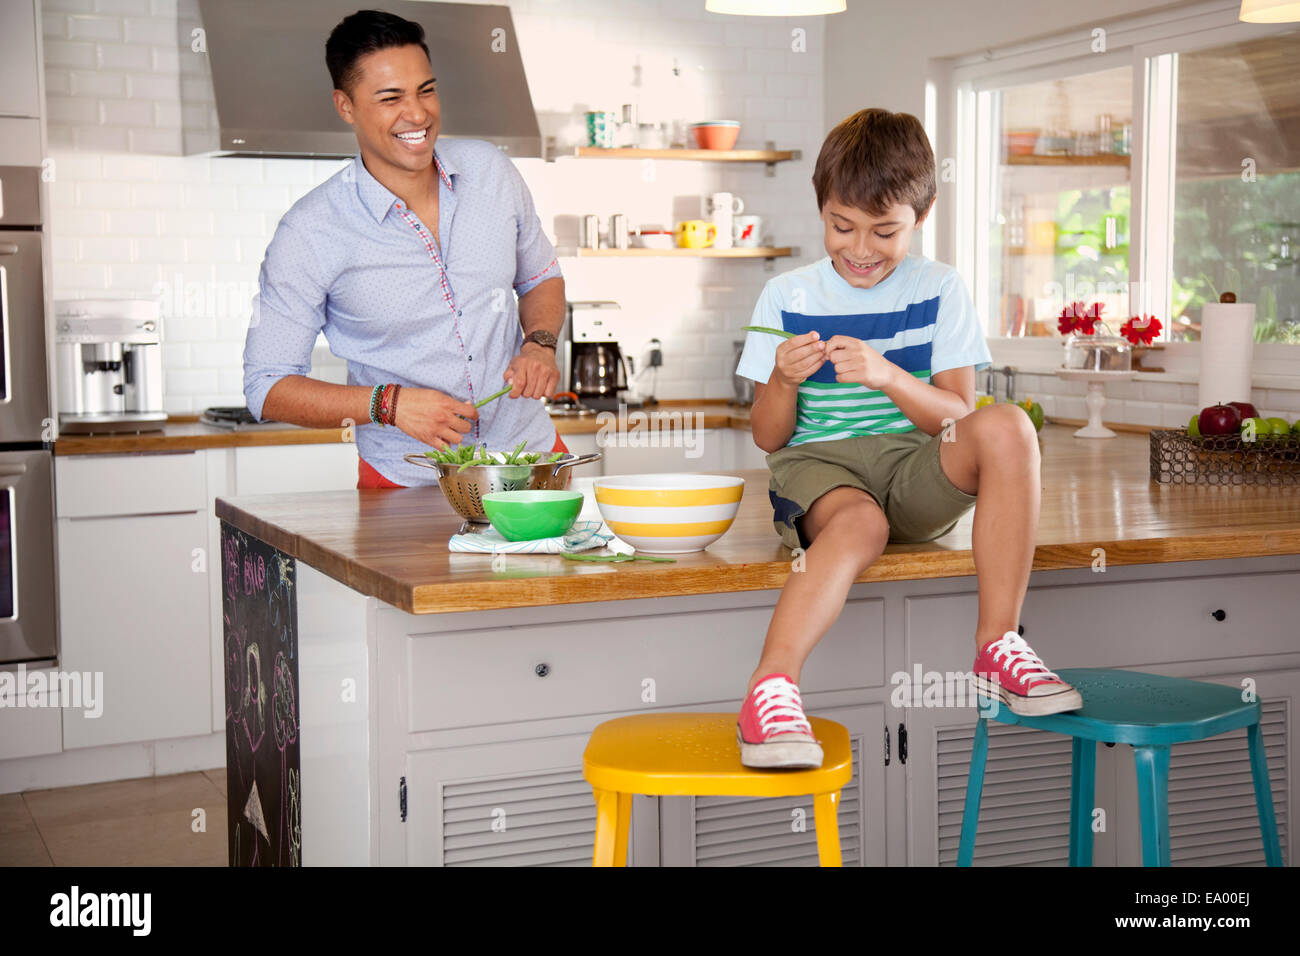 Father and son in kitchen, boy sitting on counter - Stock Image